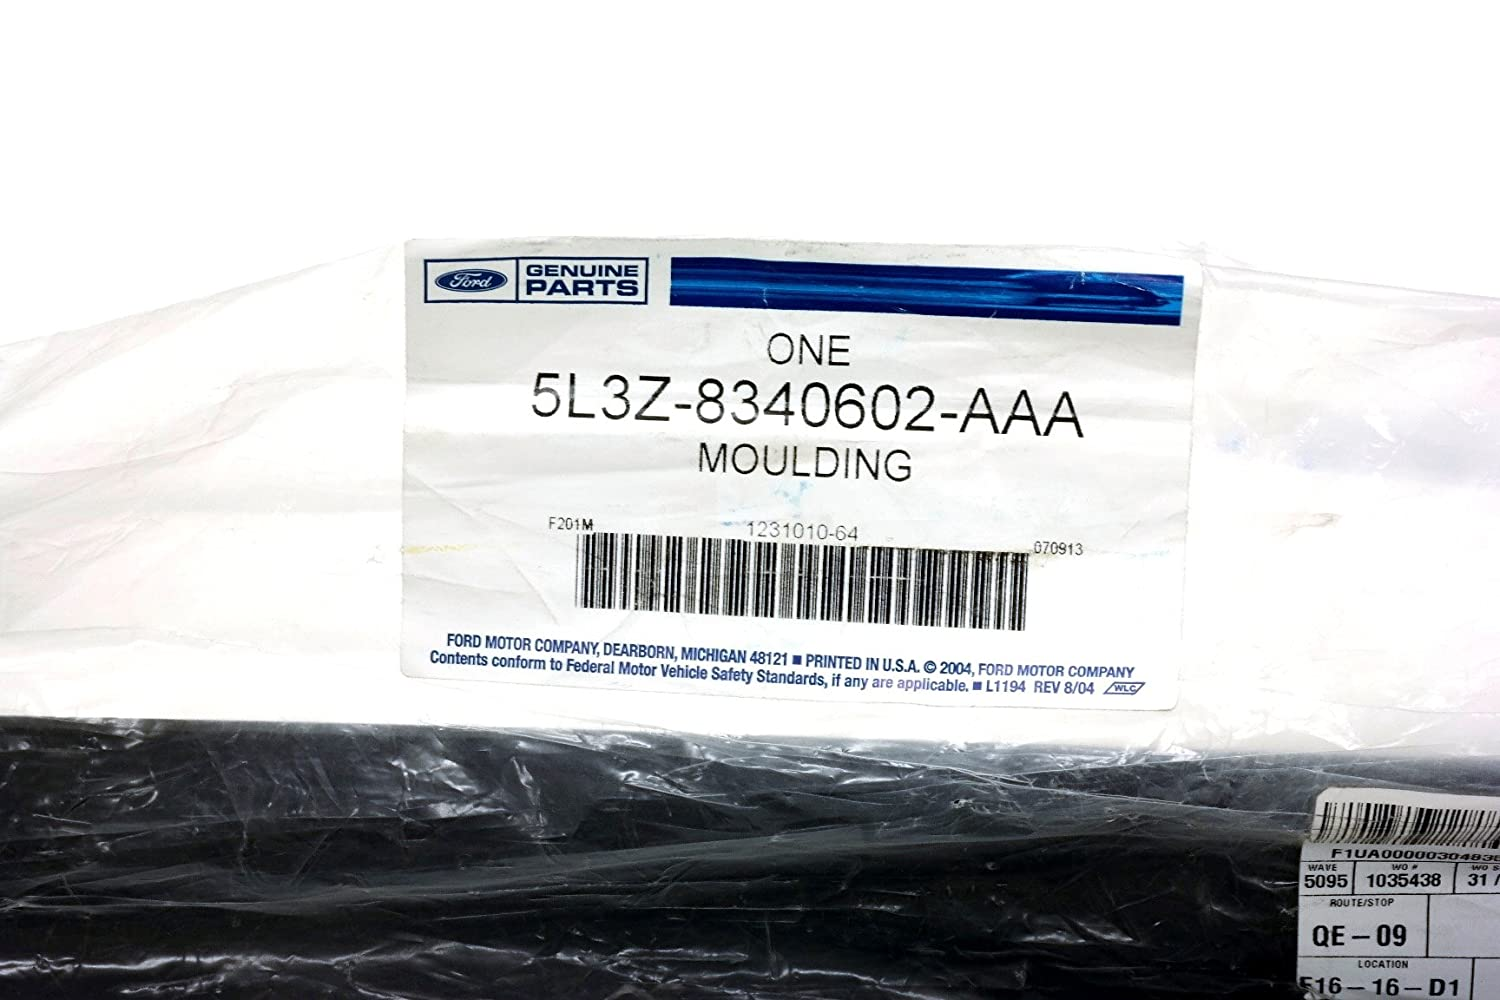 Ford 5L3Z-8340602-AAA - MOULDING